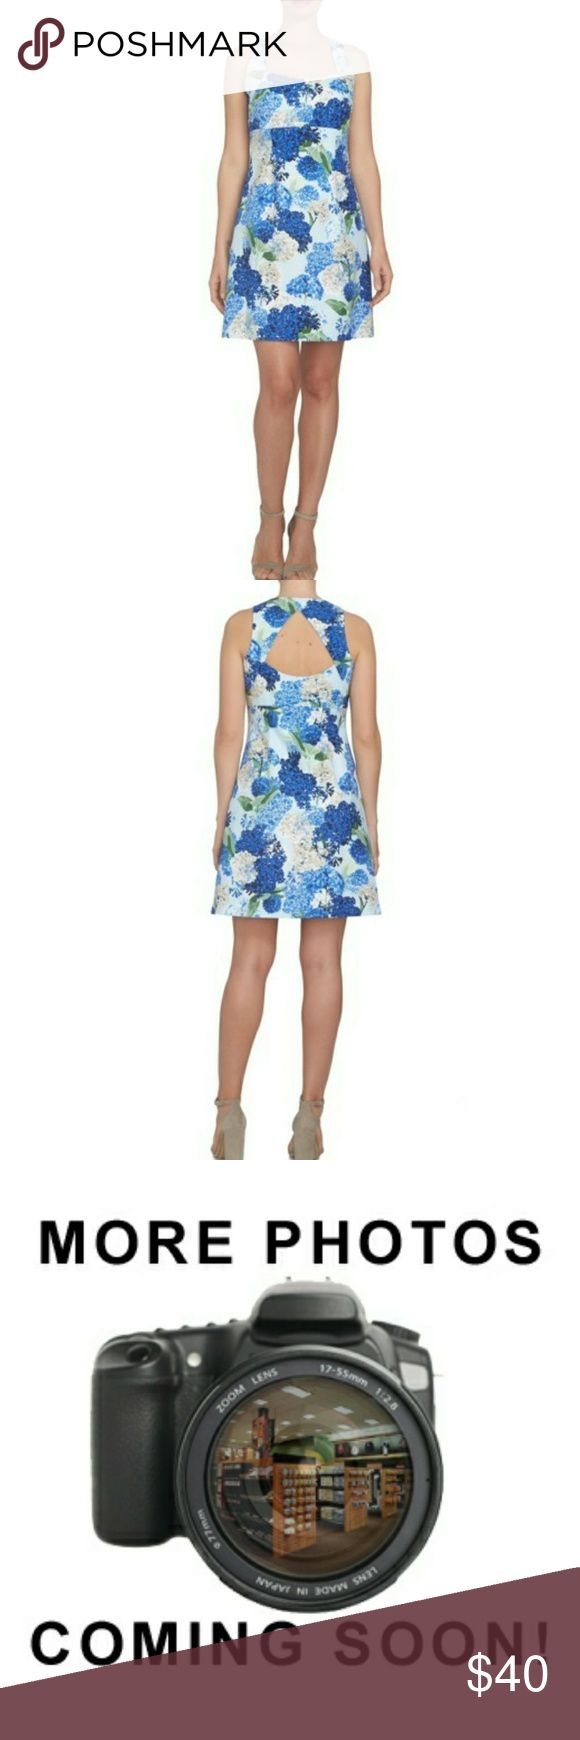 """CeCe by Cynthia Steffe Fit & Flare Dress DetailsBold hydrangea blossoms lend their vivacious botanical beauty to a sweet sundress with a defined waistline and flirty back cutout. - 35 1/2"""" length (size 0) - Square neck - Sleeveless - Lined - 97% cotton, 3% spandex - Machine wash, tumble dry - Imported - Point of View  Additional Info True to size. Cynthia Steffe Dresses Mini"""